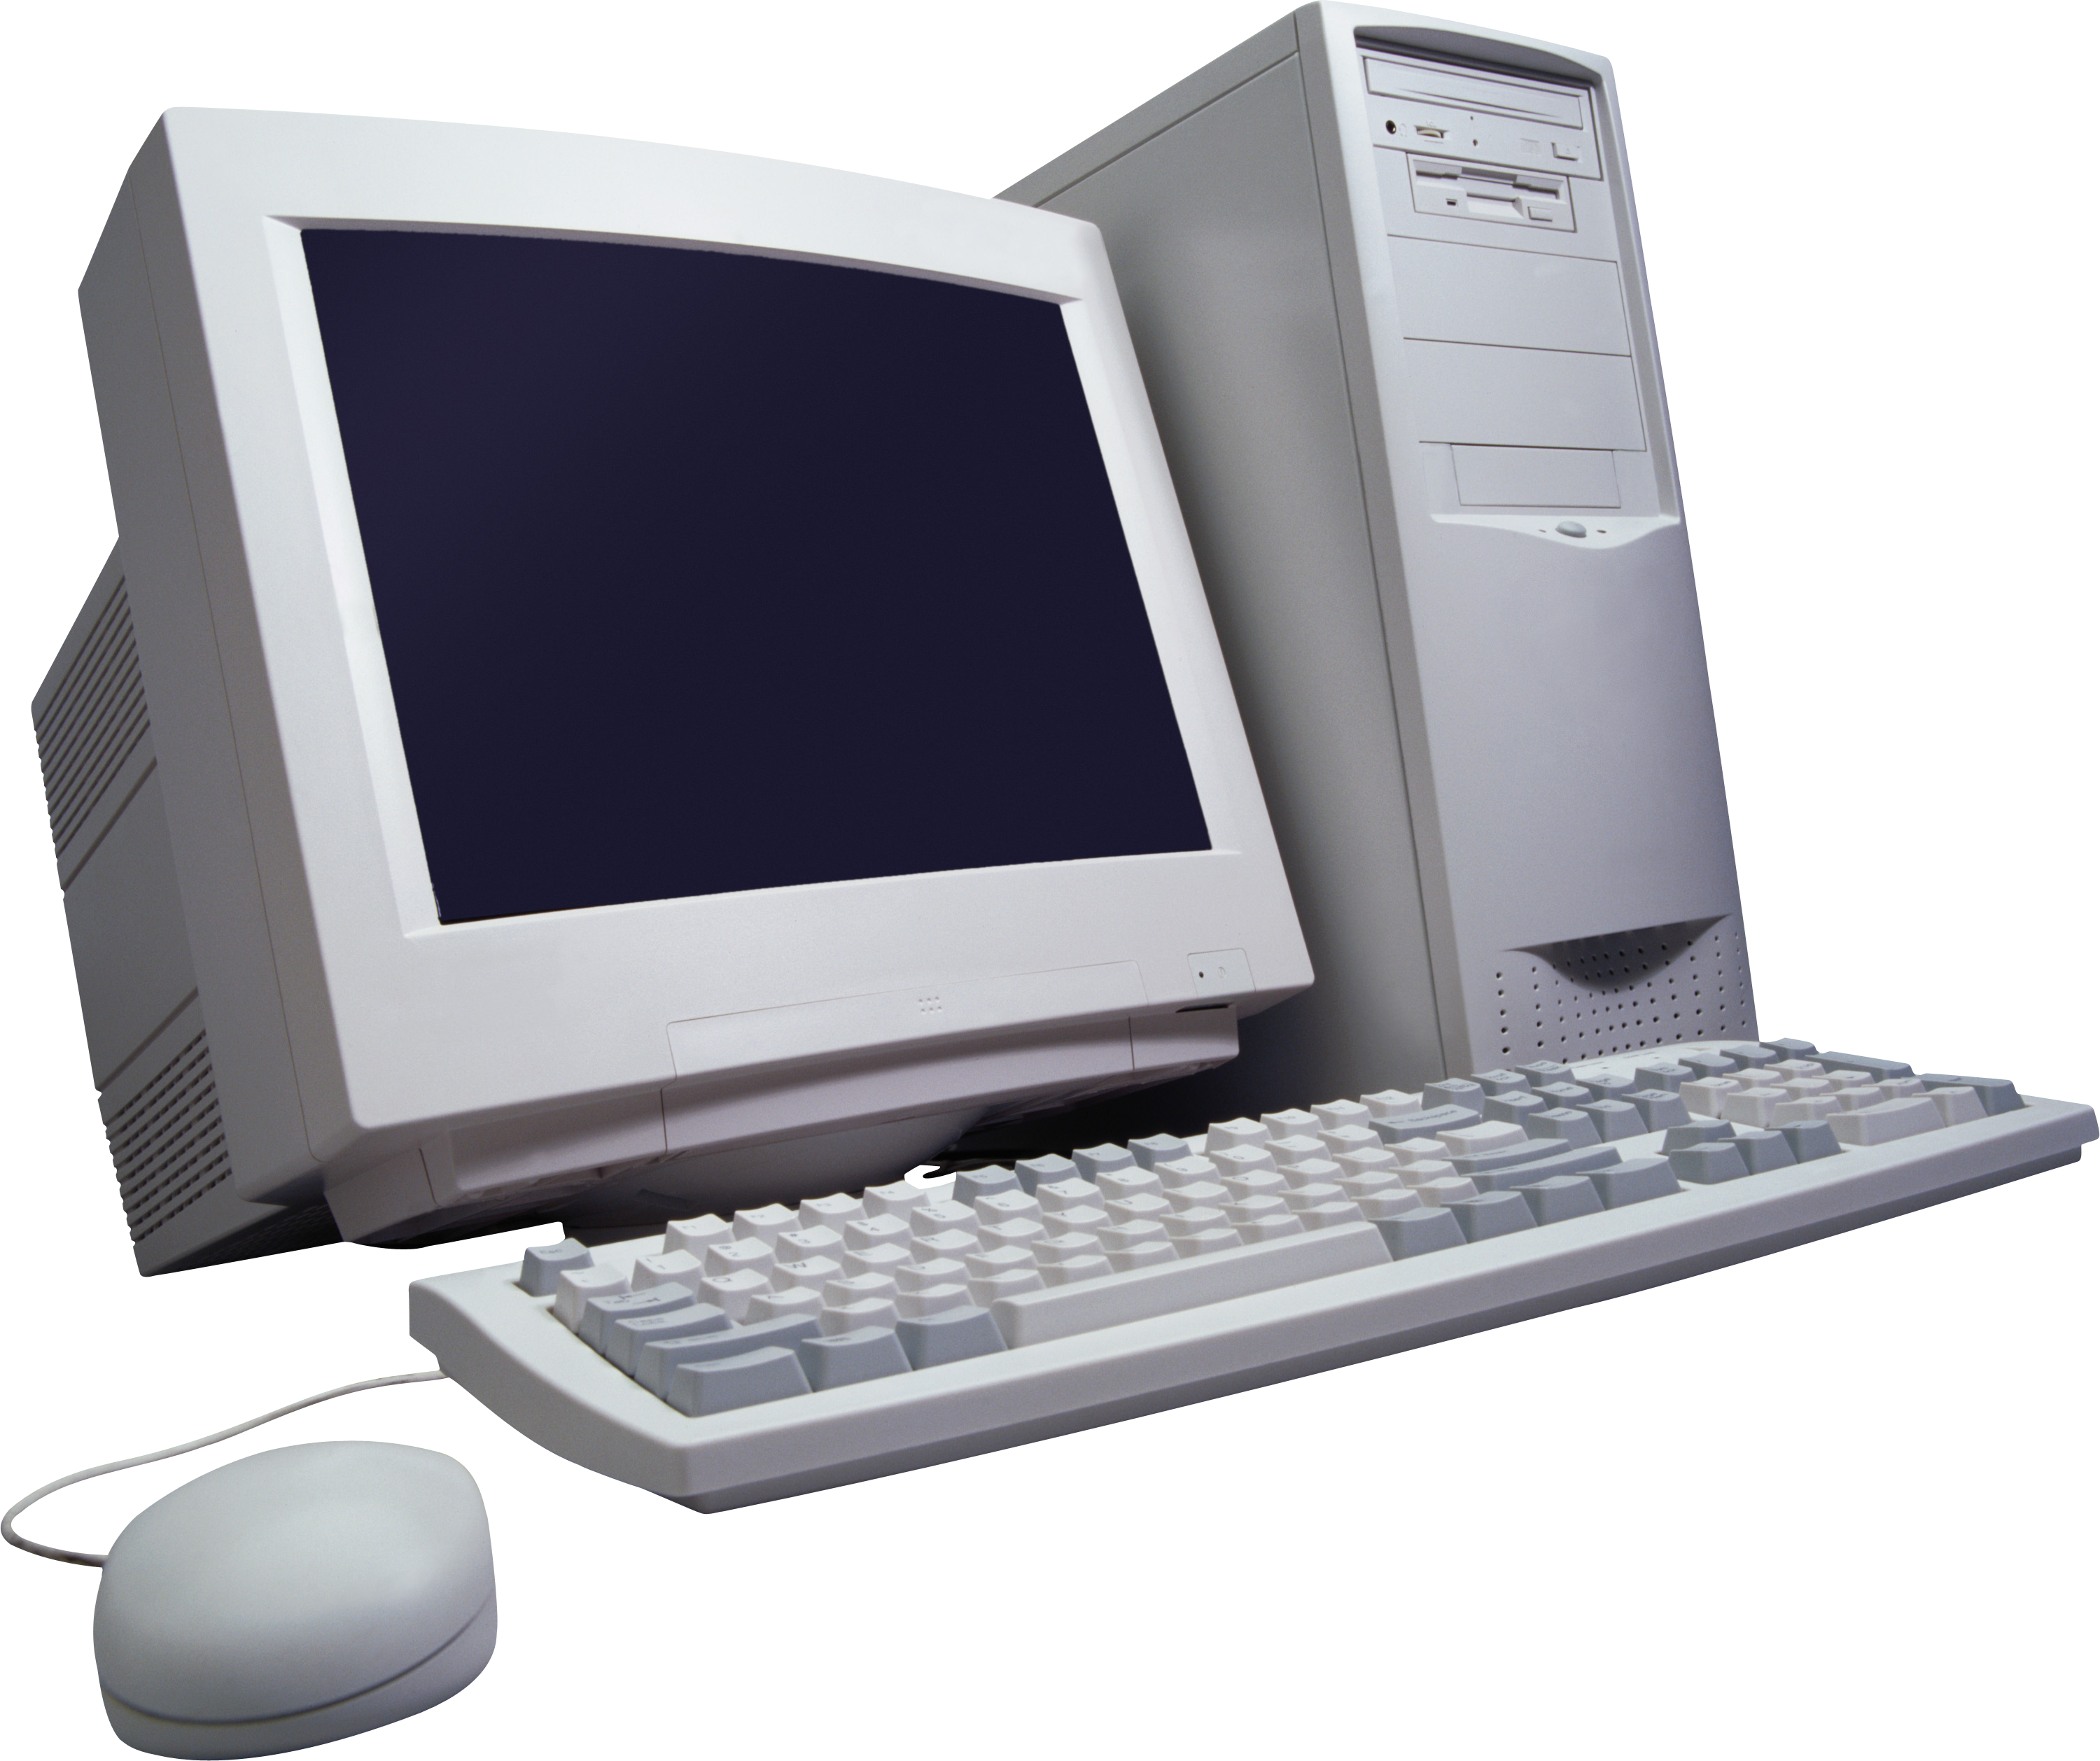 Computer PC free PNG images download.